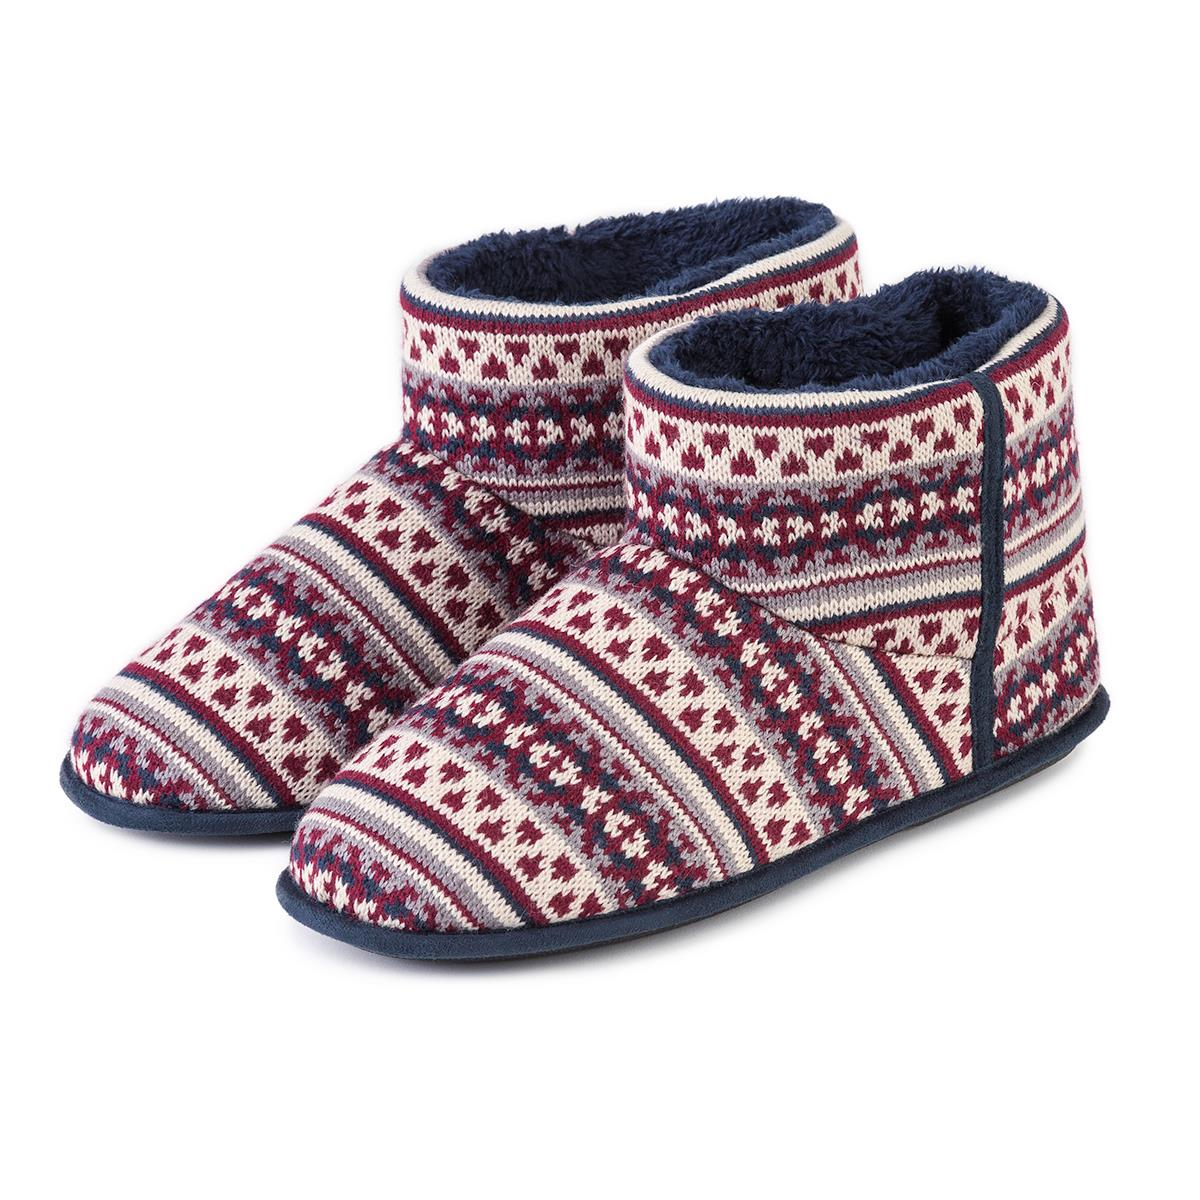 Totes Mens Fair Isle Bootie Slippers 3142L Brand New & Boxed Various Sizes